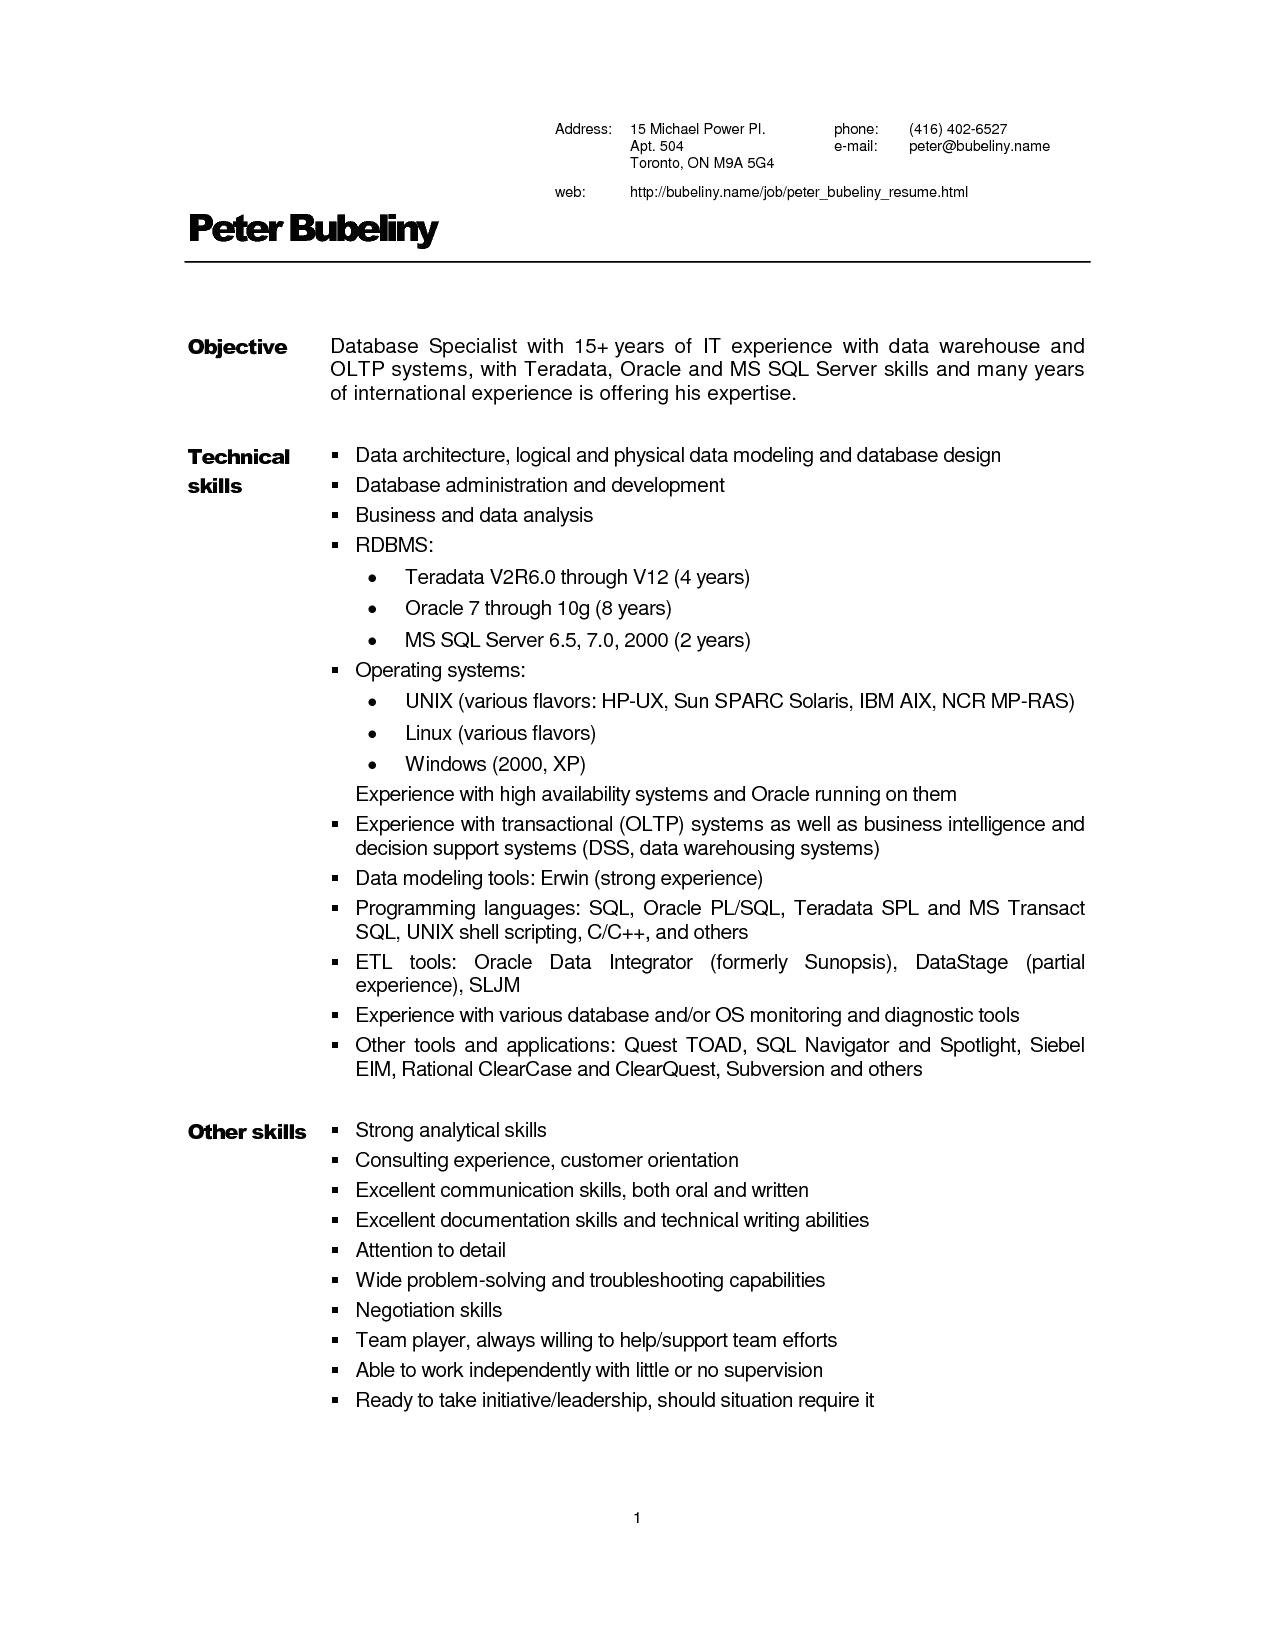 Sample Resume for Lawn Care Worker Sample Resume for Lawn Care Worker Awesome Fresh Yard